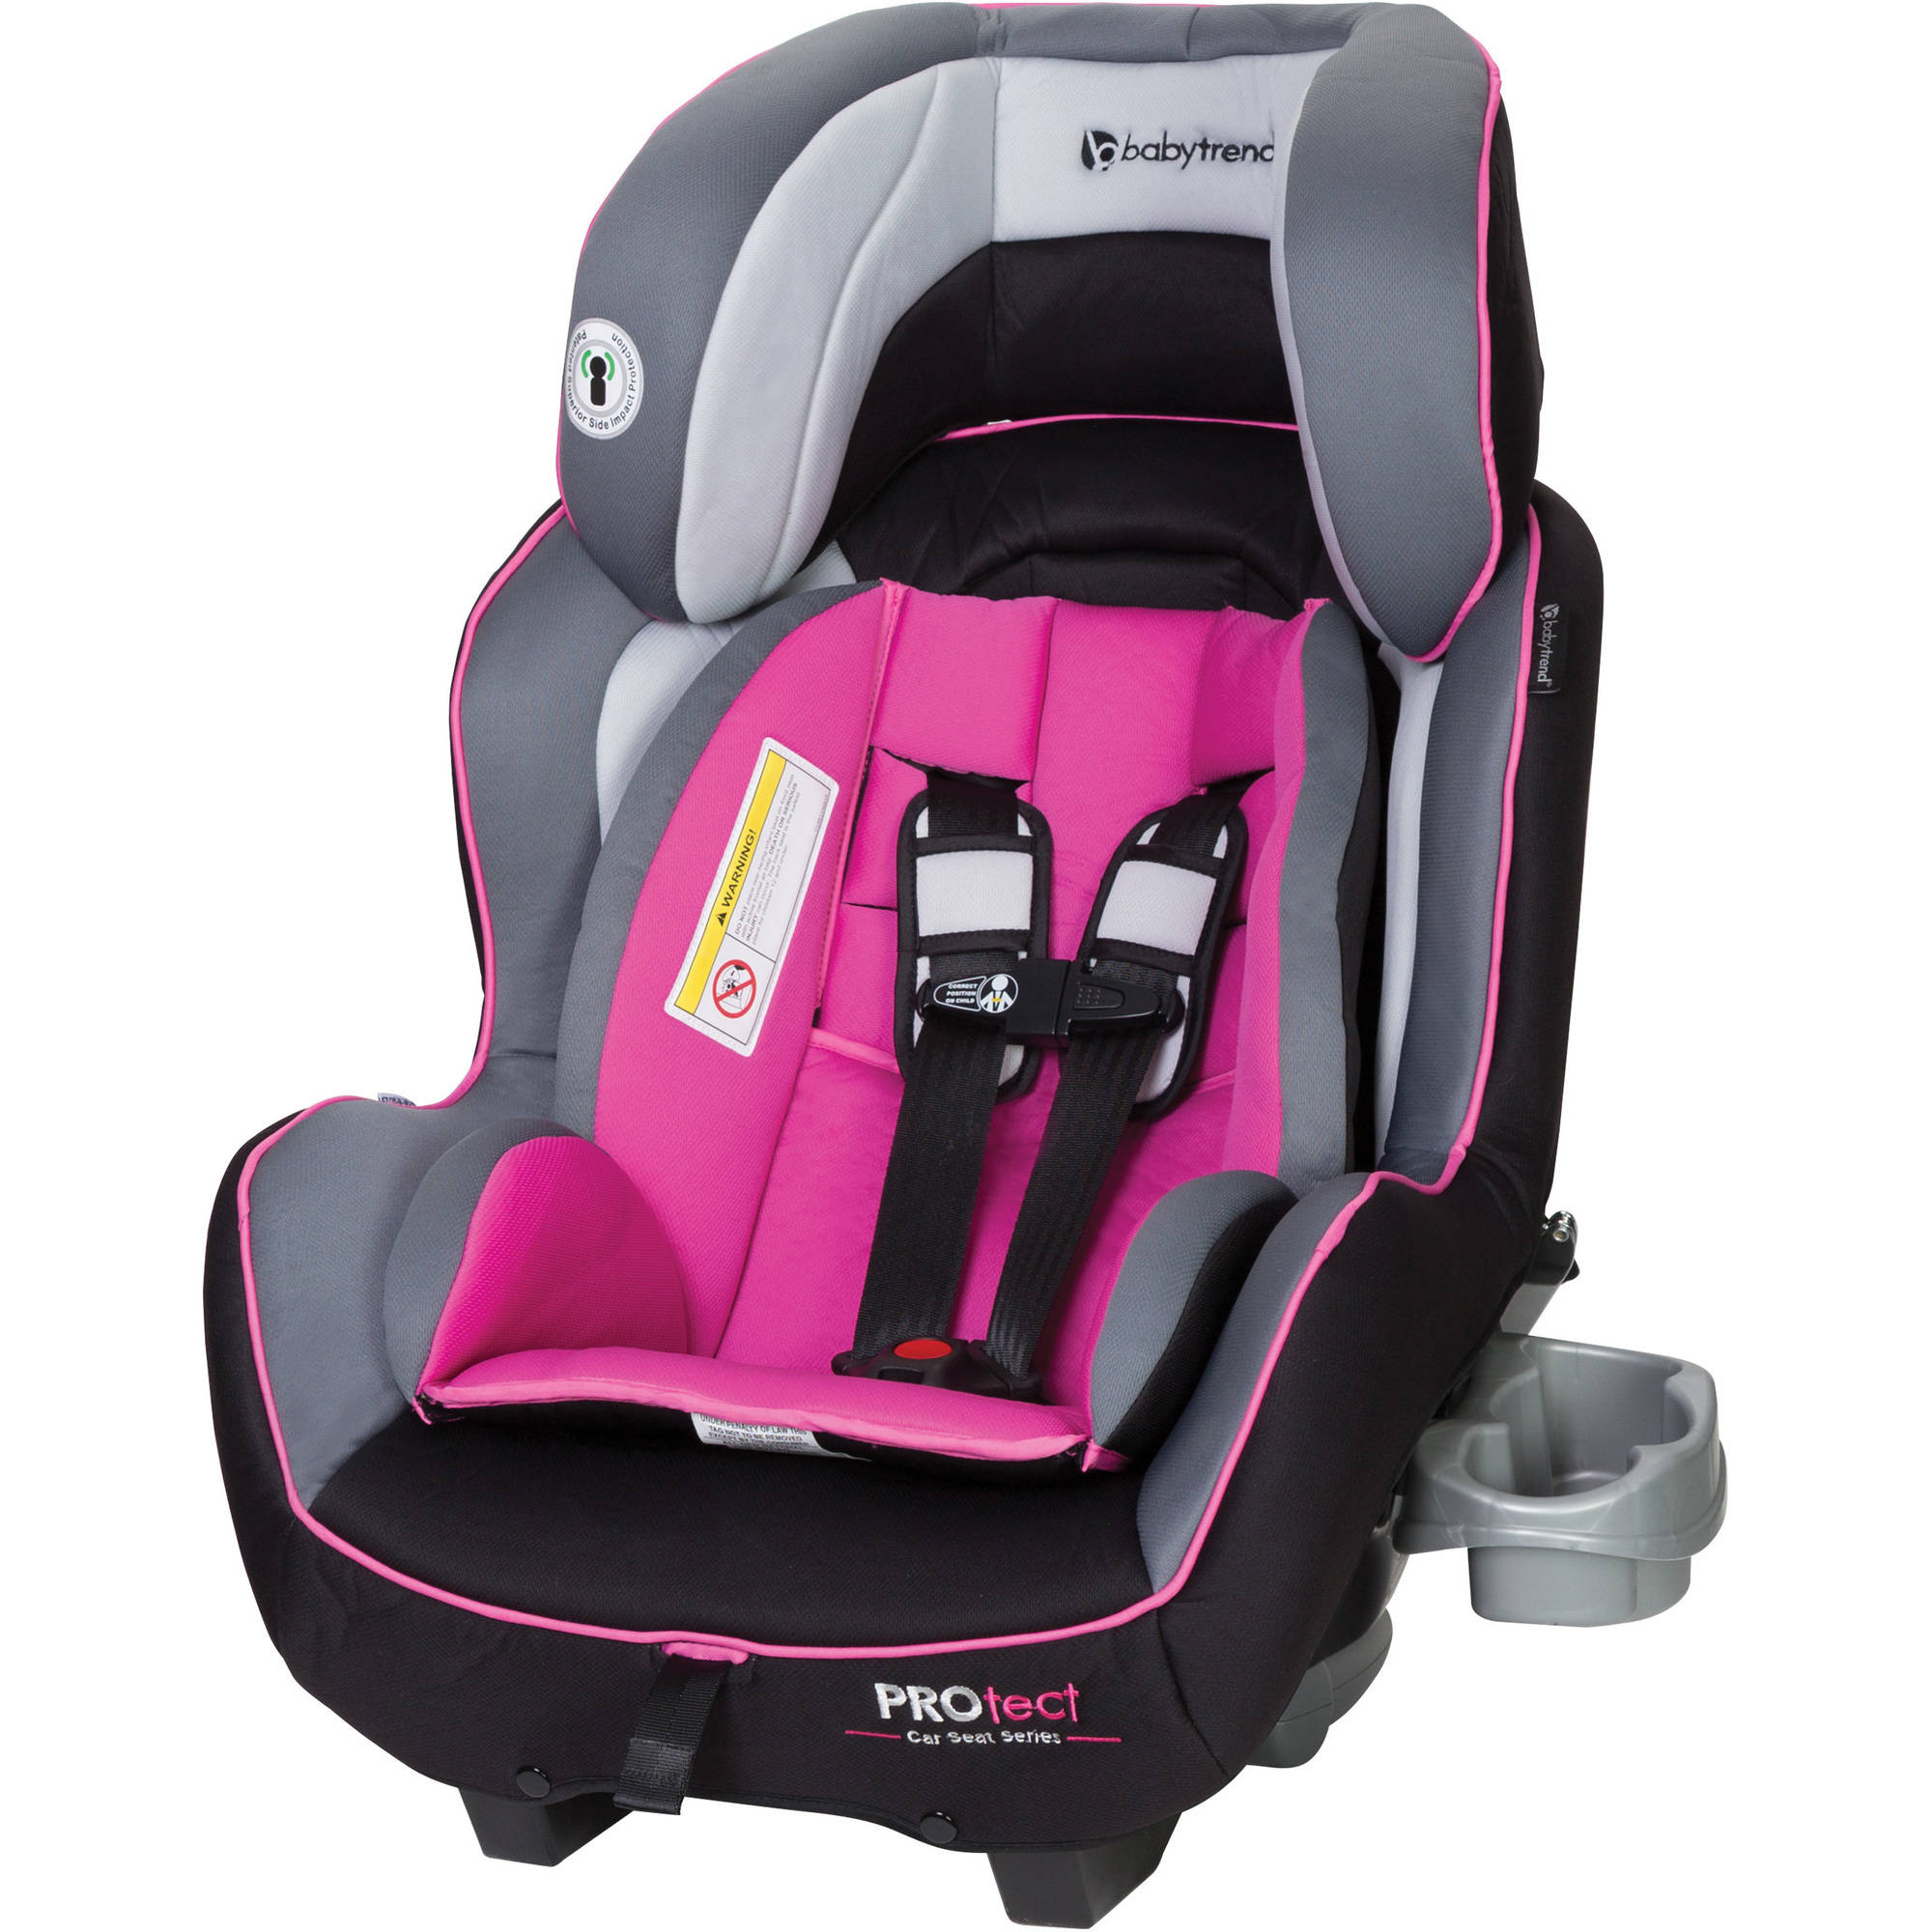 Baby Trend PROtect Sport Convertible Car Seat, Celeste